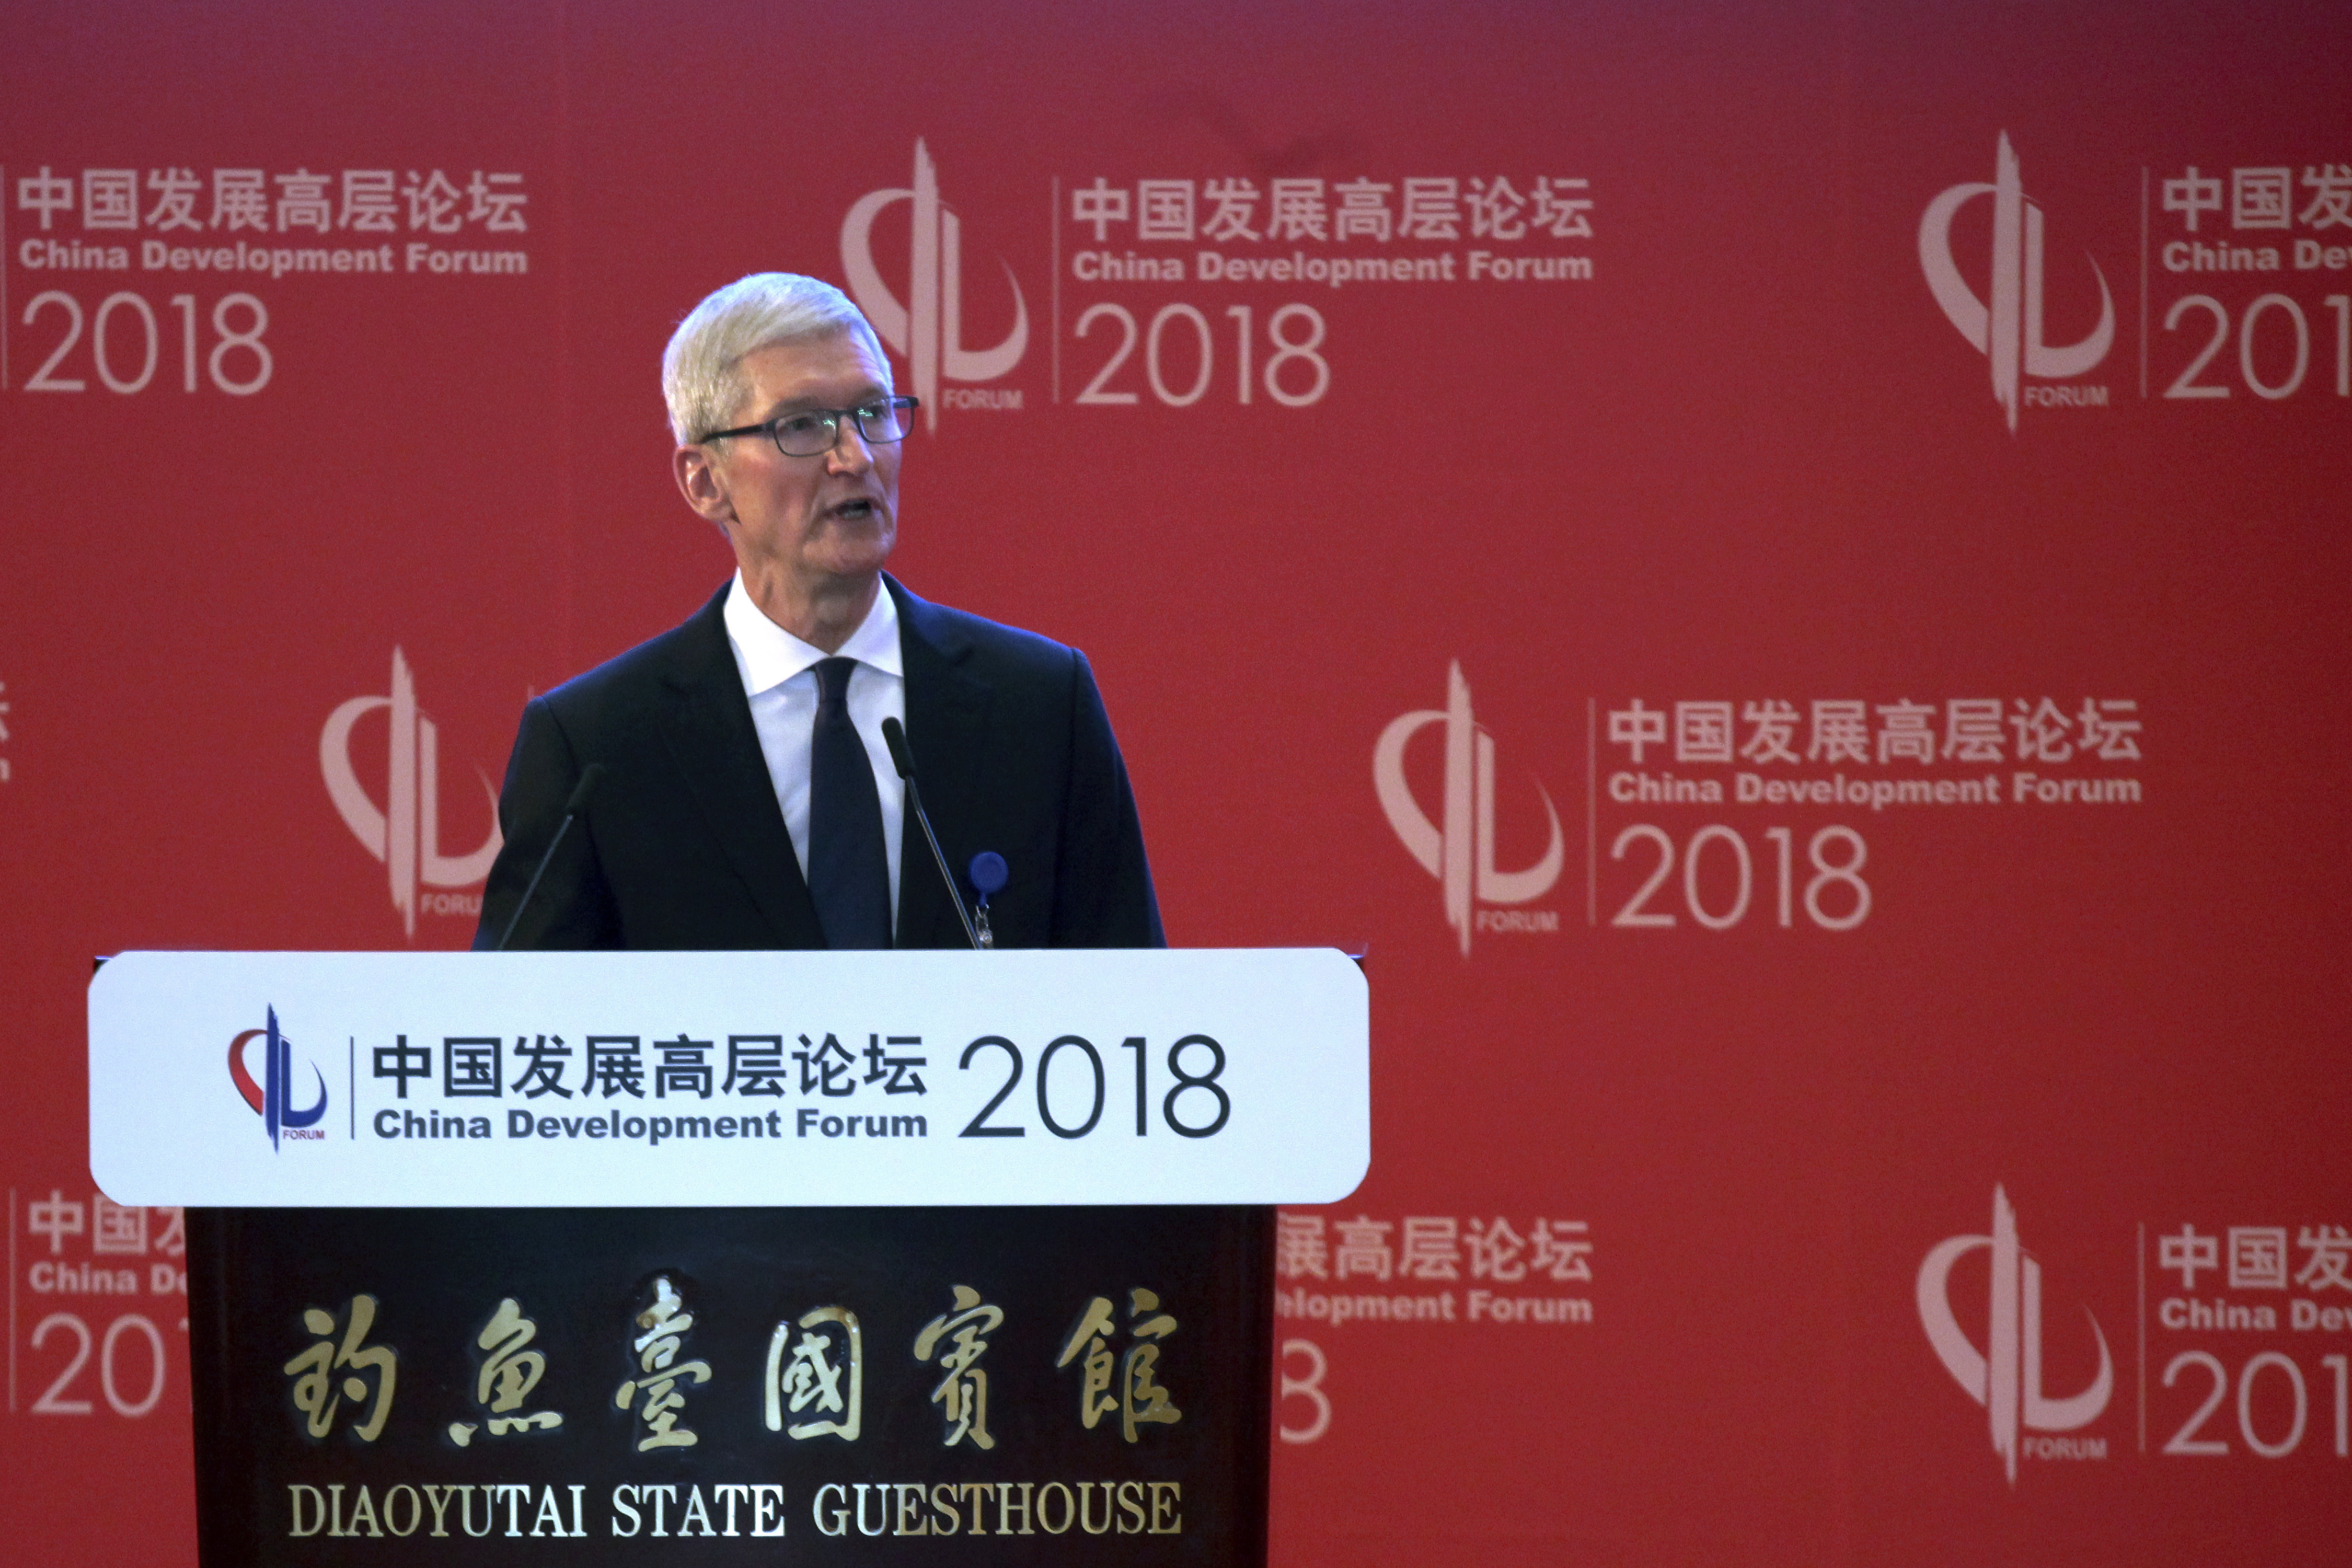 Tim Cook, Apple CEO delivers his speech at the opening ceremony of the China Development Forum held at the Diaoyutai State Guesthouse in Beijing, March 25, 2018.